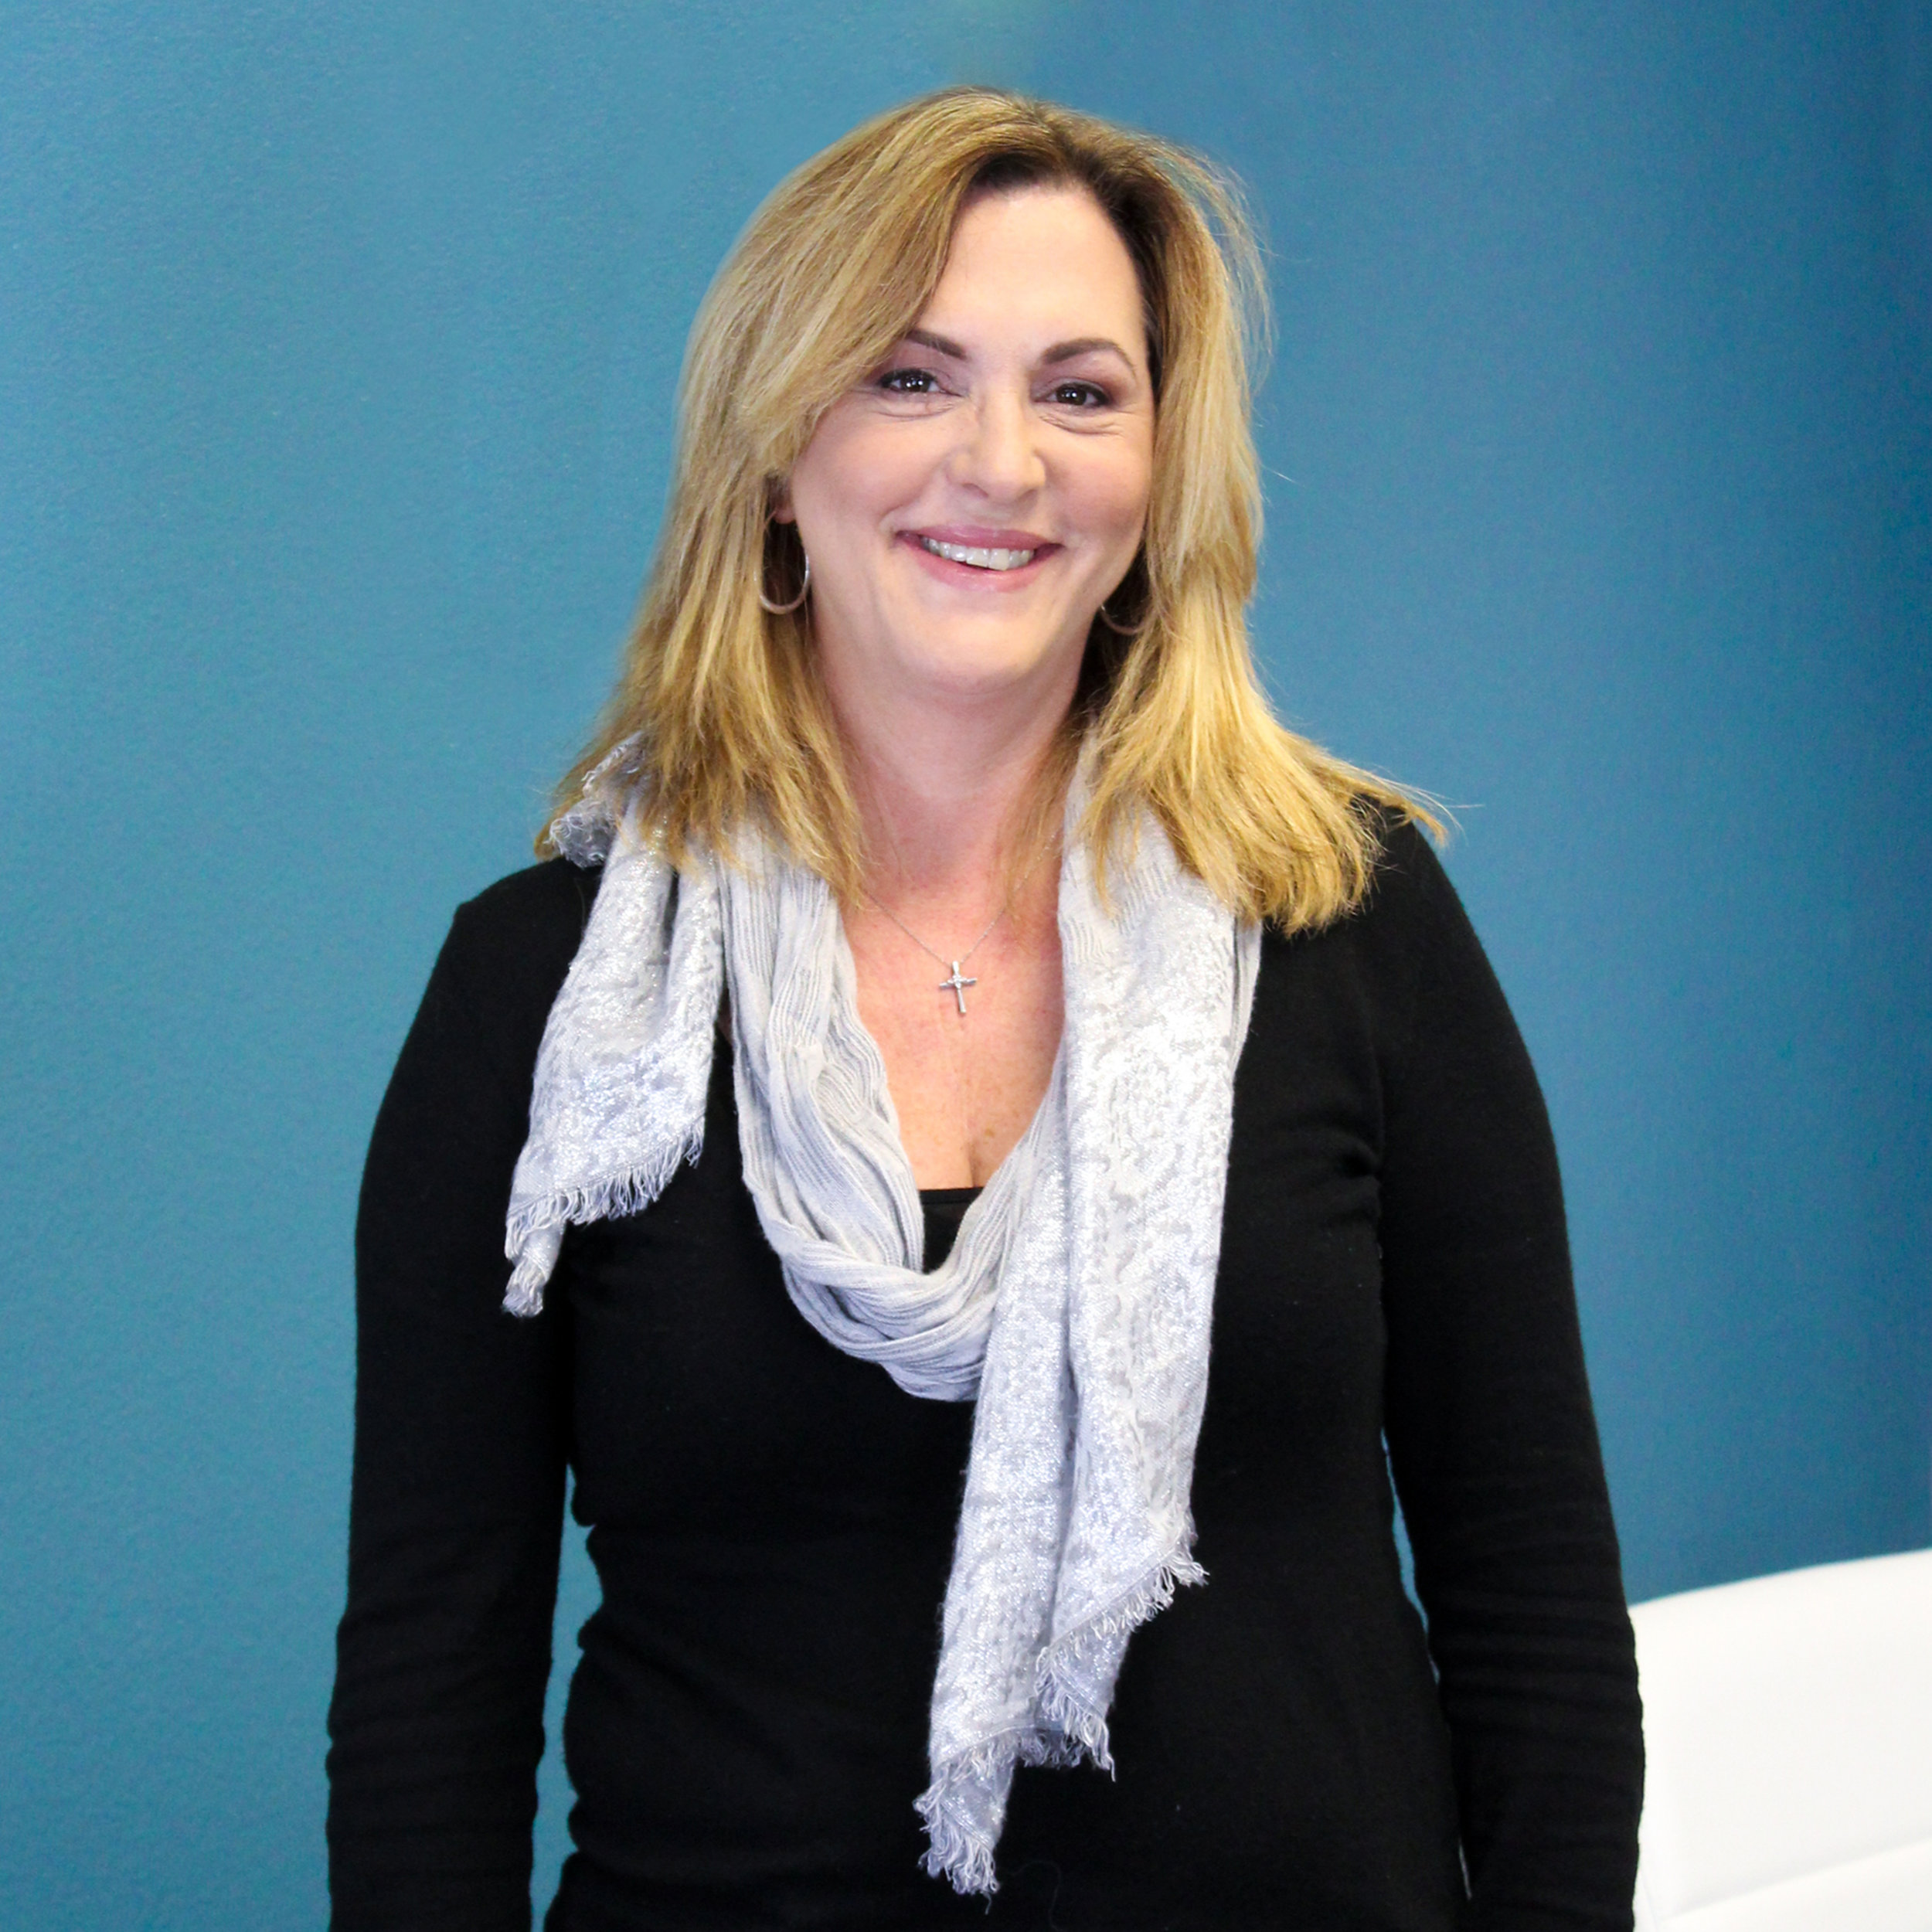 Tonya worked at Wells Fargo Home Mortgage in the retail division, a joint venture with a Home Builder from 2003 to 2009. She began working in the title insurance field in 2009 for a foreclosure firm processing REO files, she's been an REO processor since.